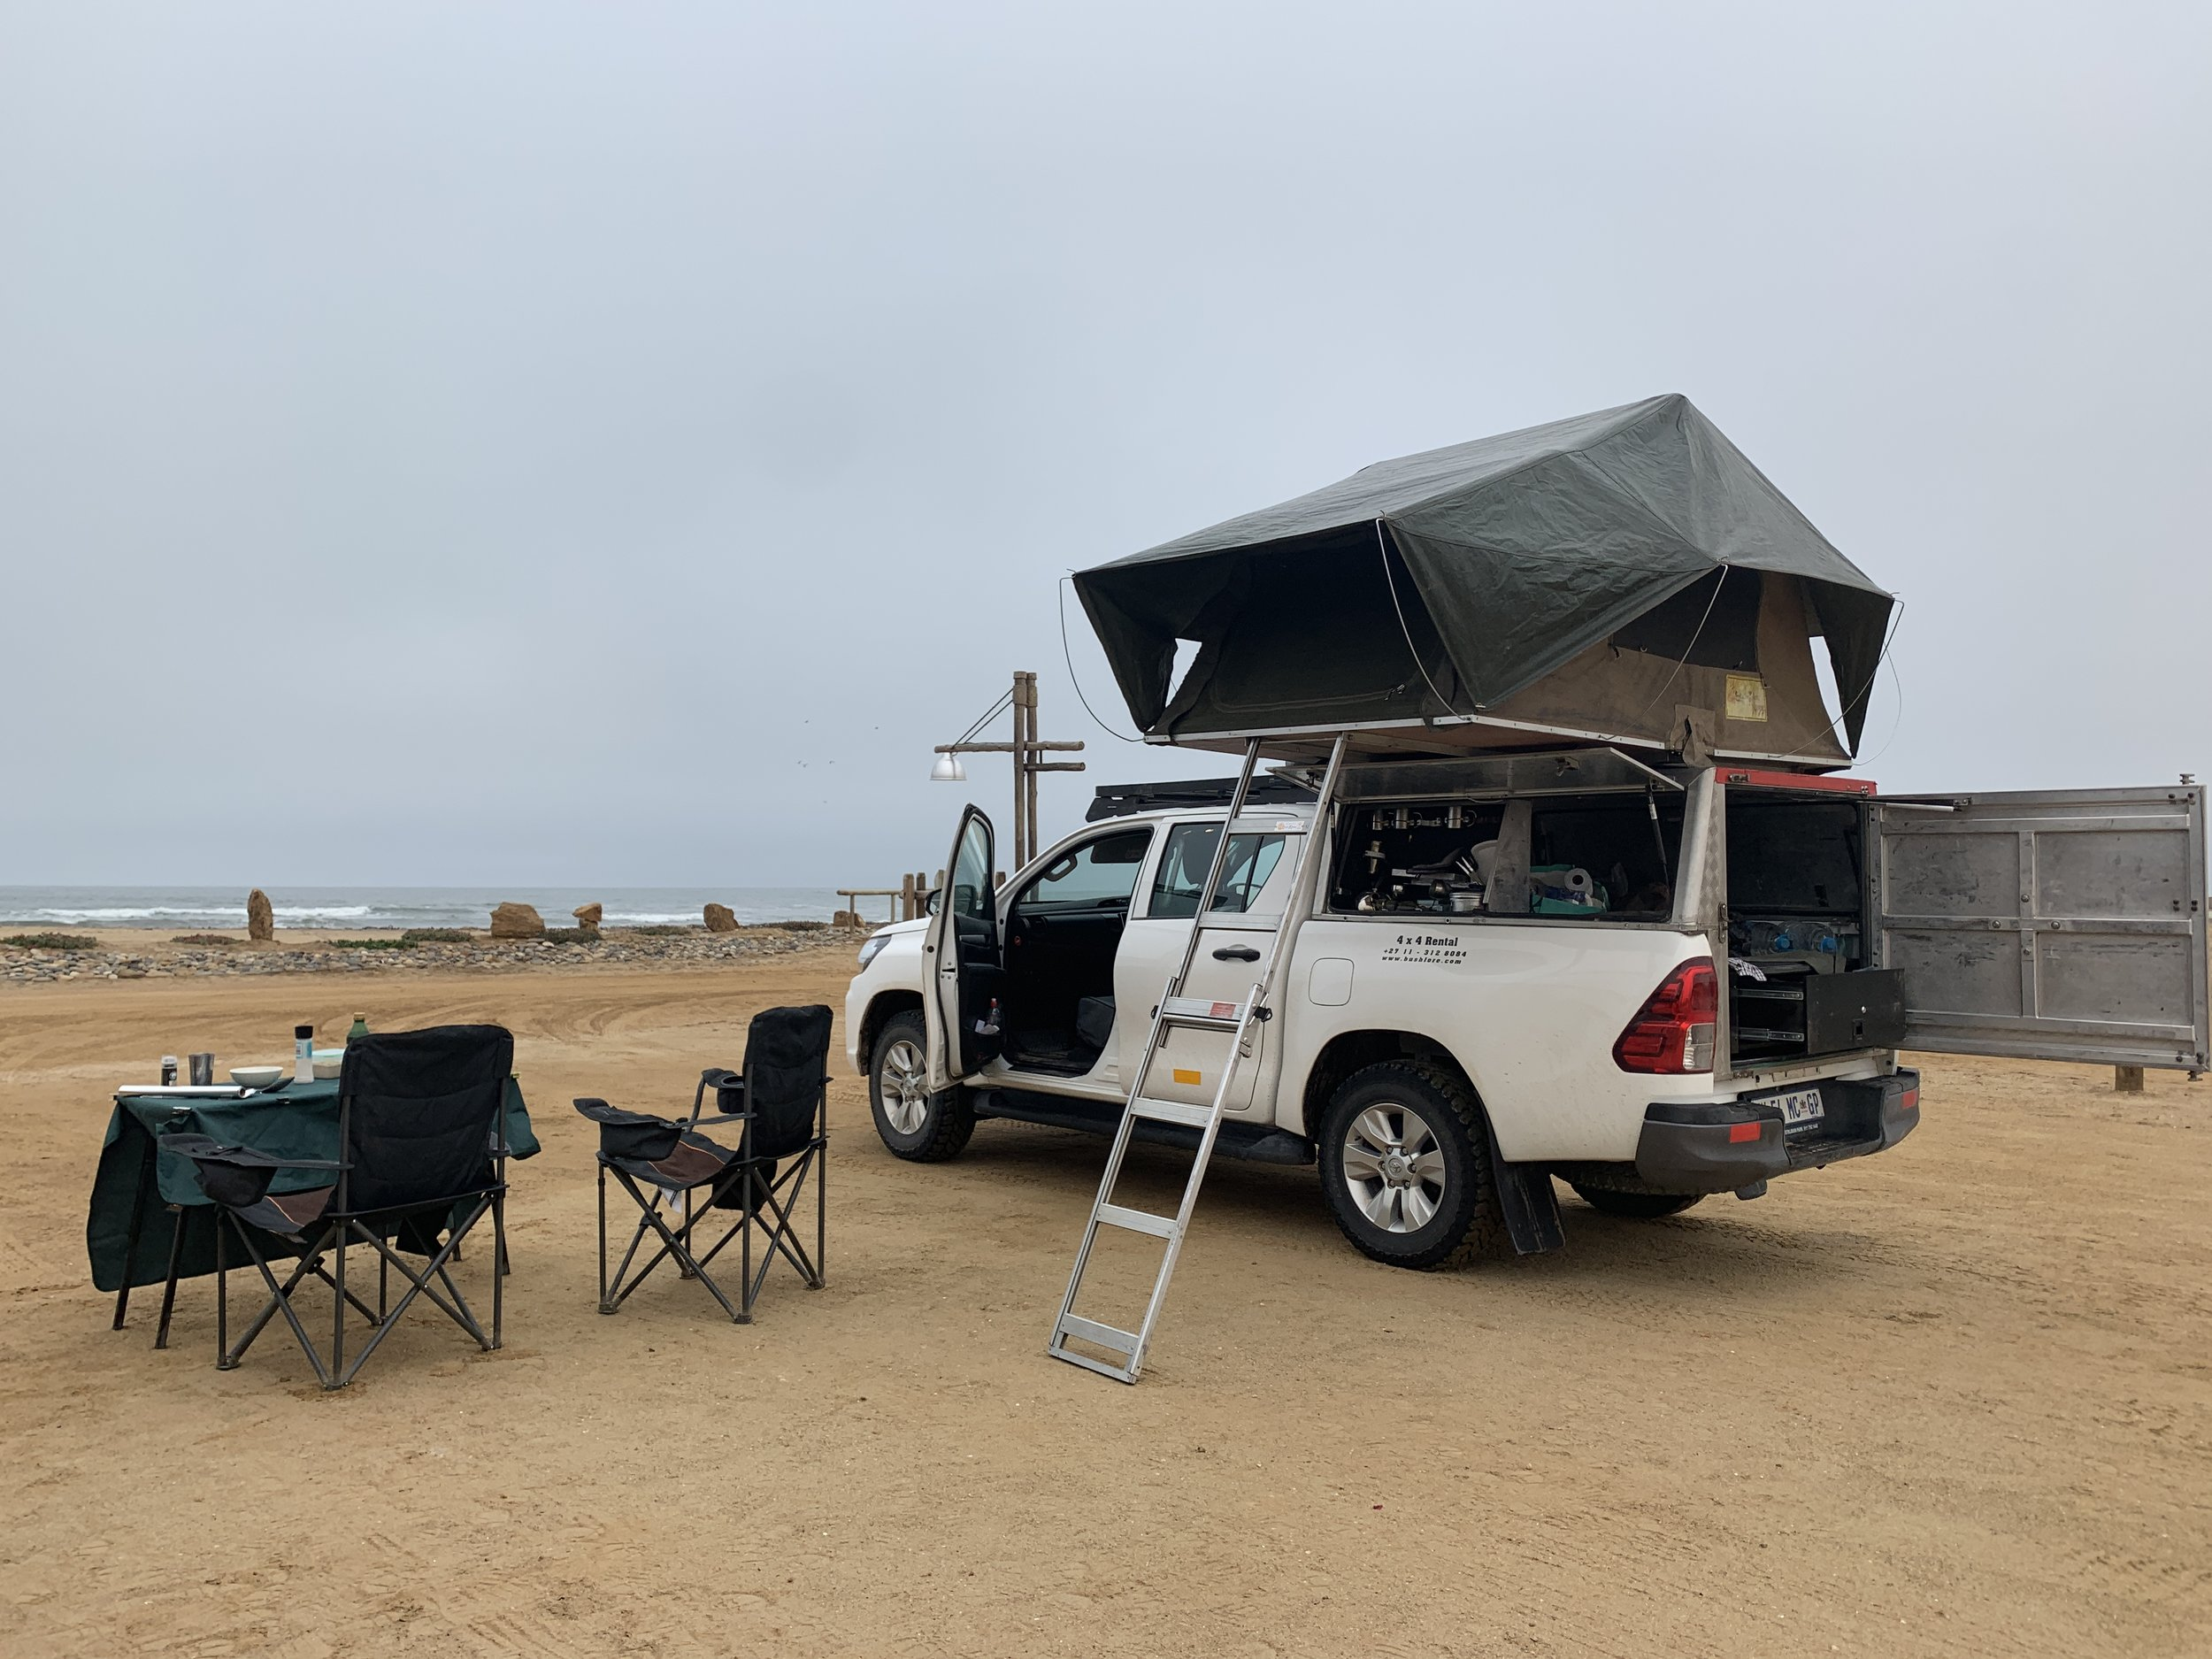 Beachfront campsites